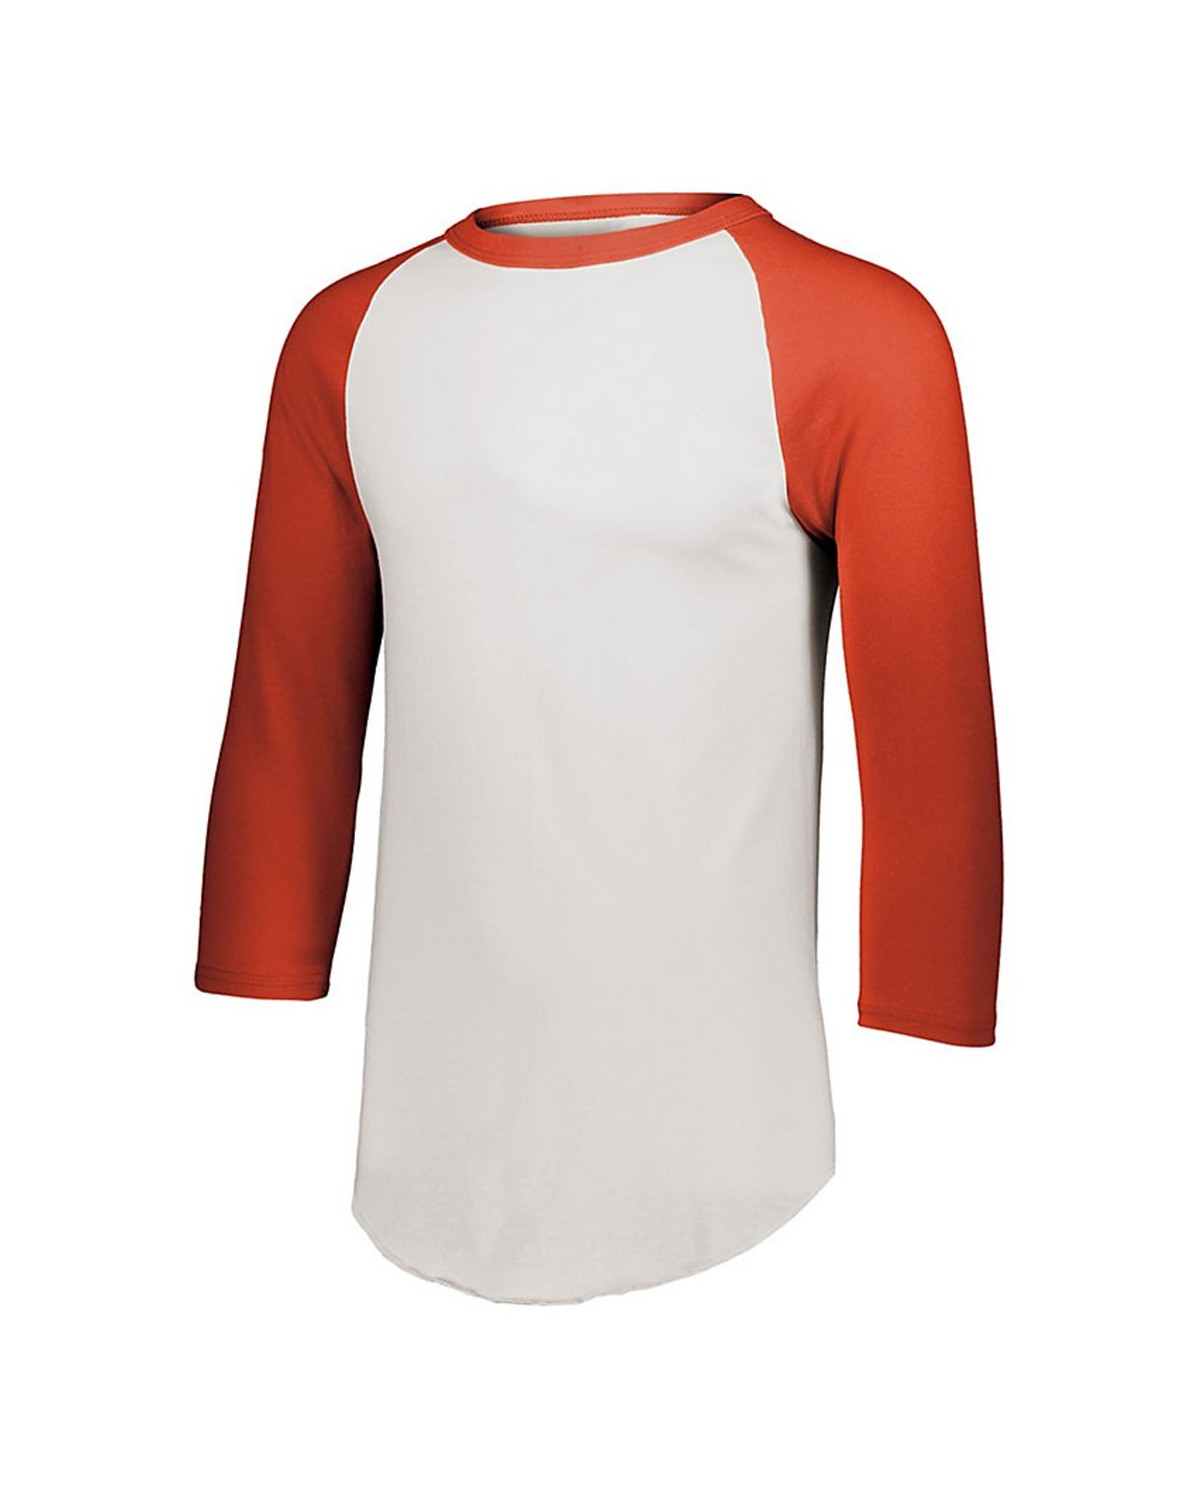 NL1533 Next Level Apparel RED